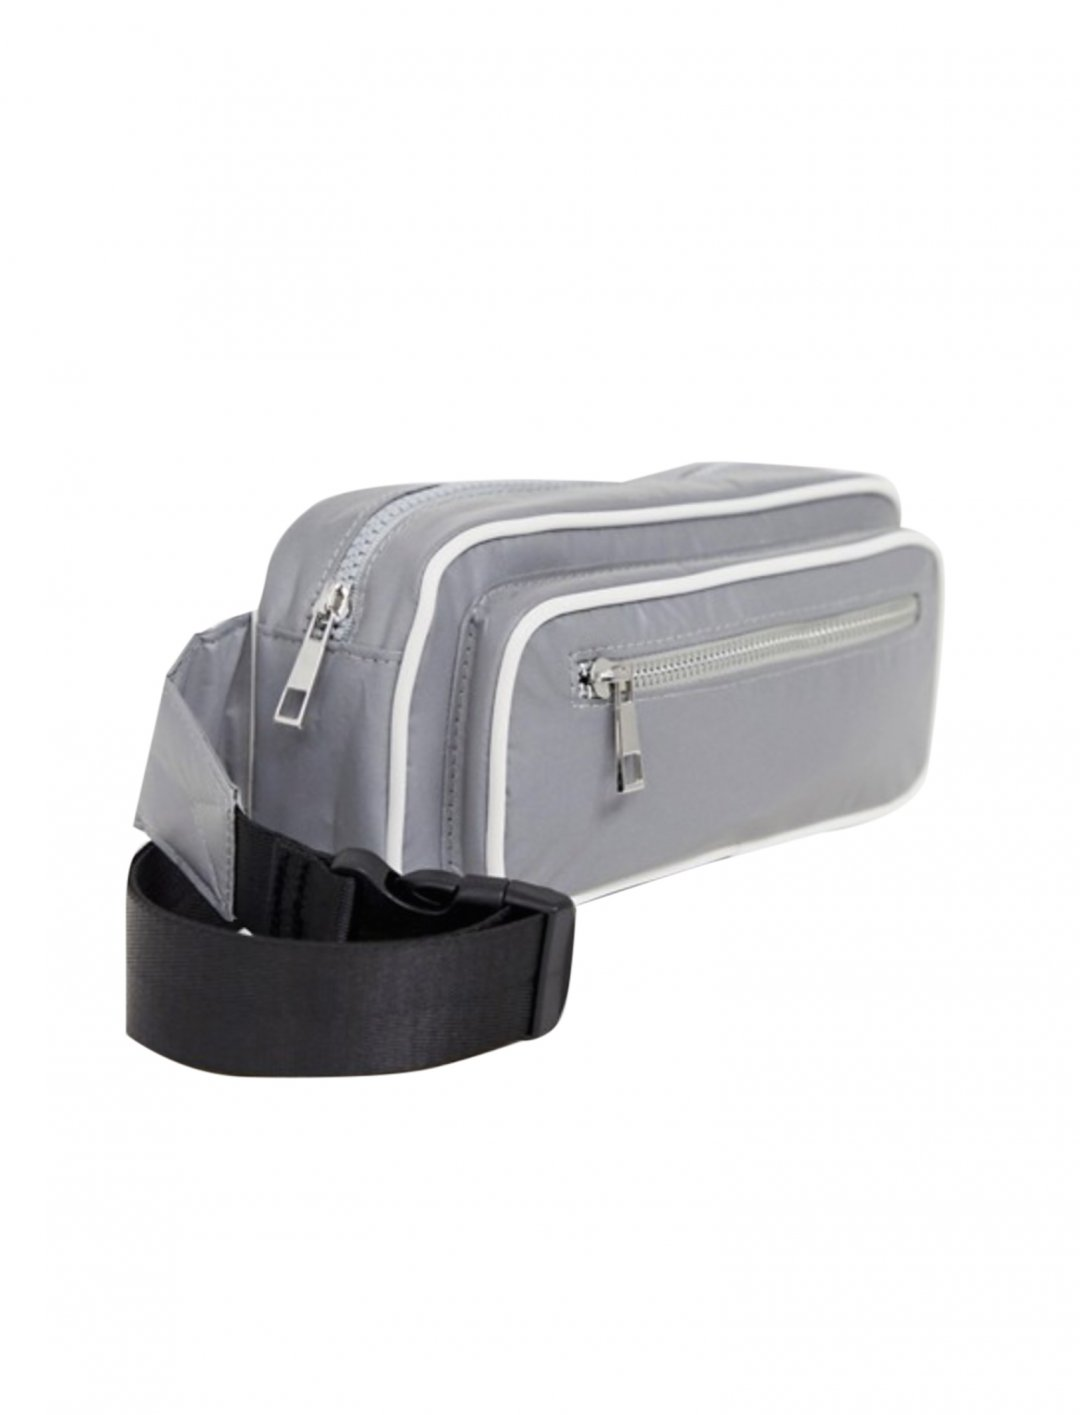 "Rreflective Bumbag {""id"":1,""product_section_id"":1,""name"":""Bags"",""order"":1} Bershka"